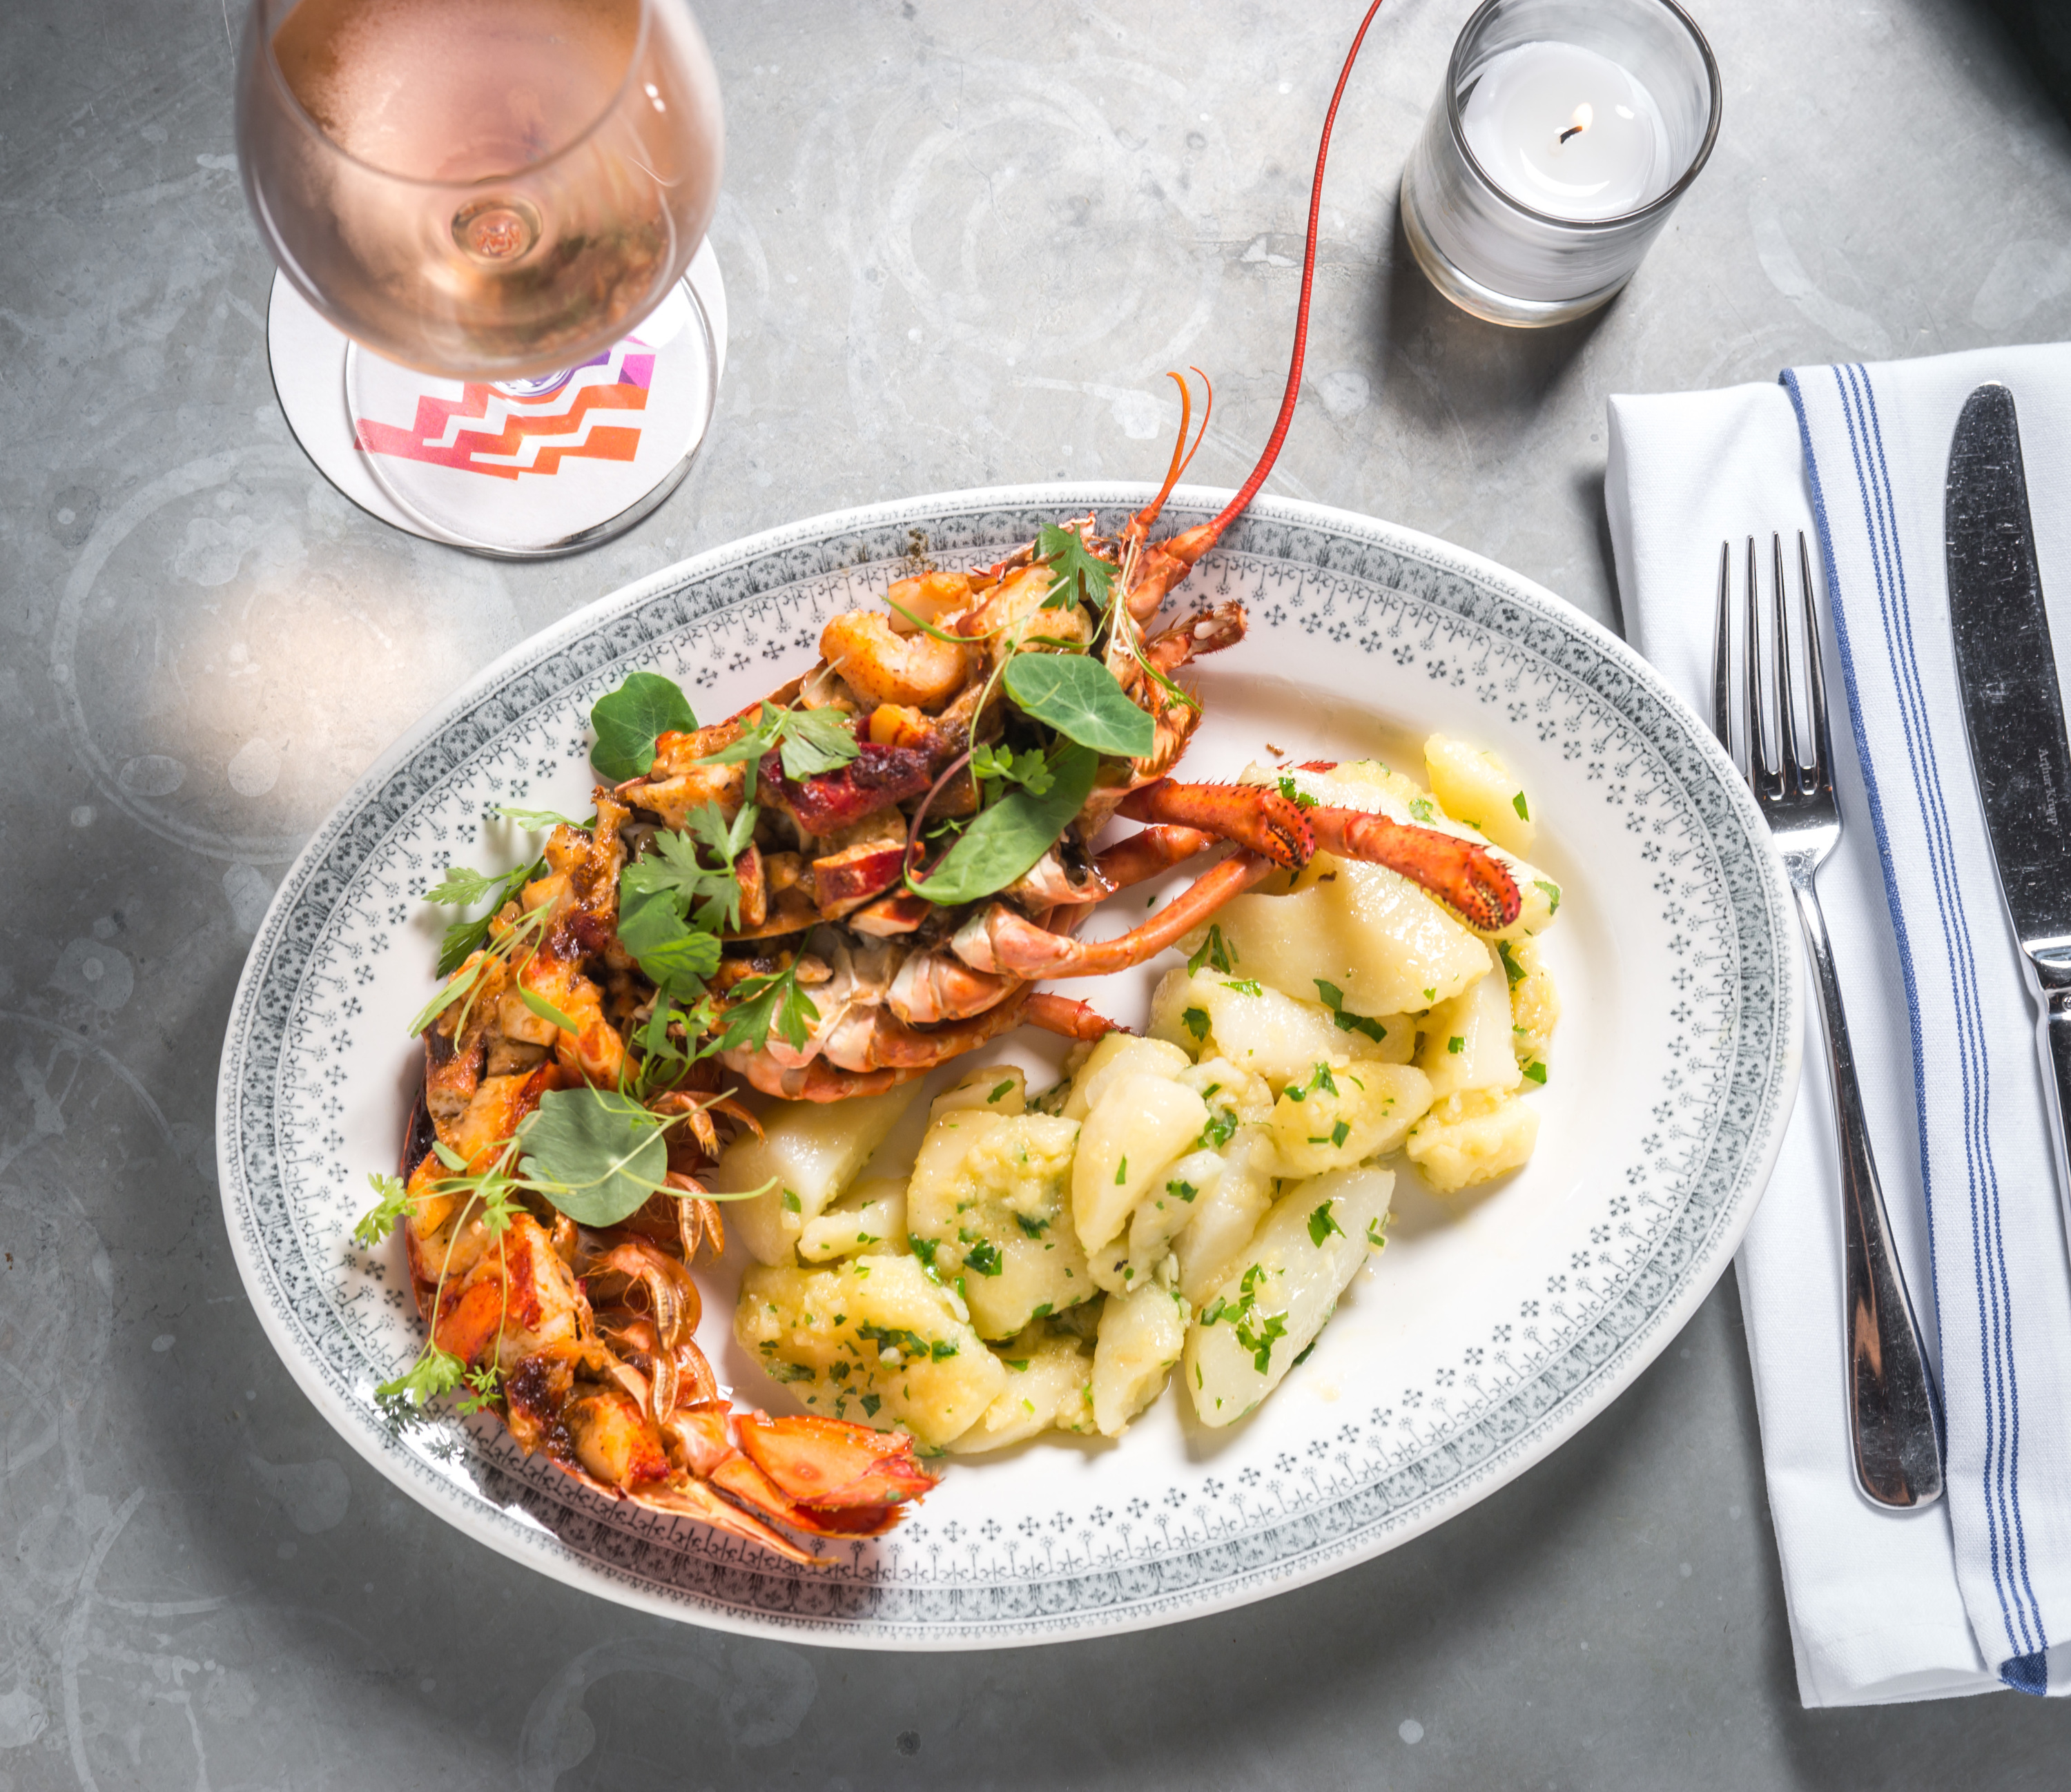 <p>Lobster at Sauvage</p>